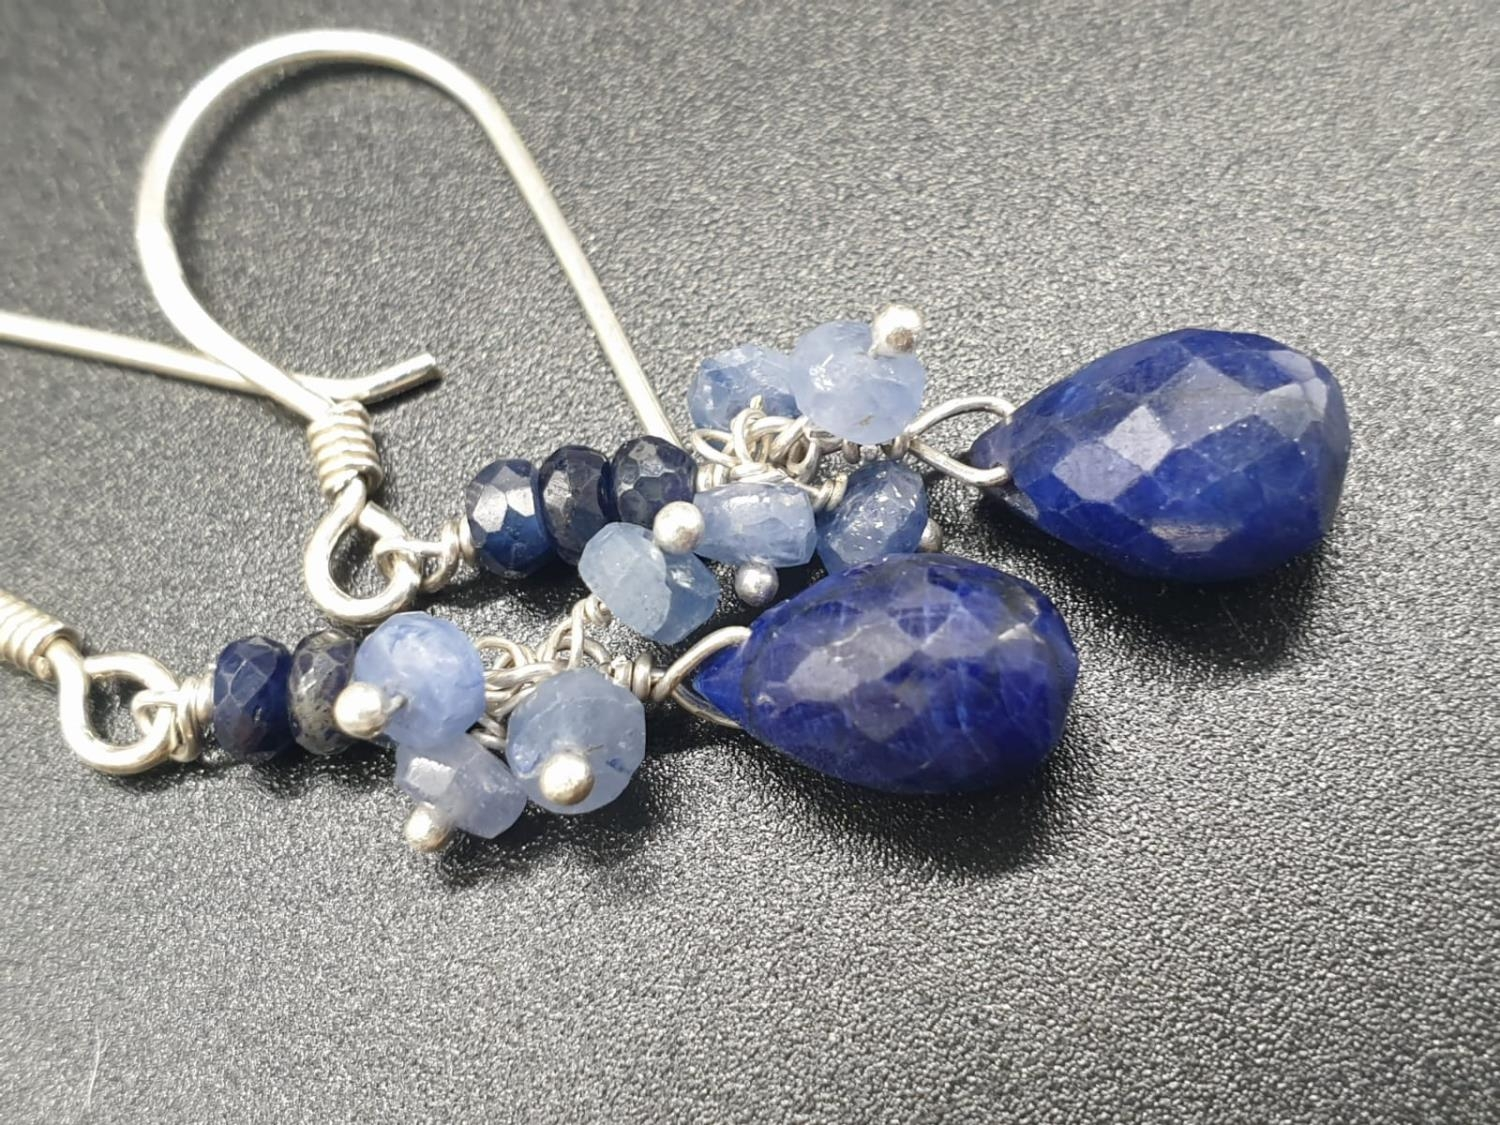 A shaded Blue sapphire Necklace with a sapphire drop and matching dangler earrings. Necklace - Image 5 of 6